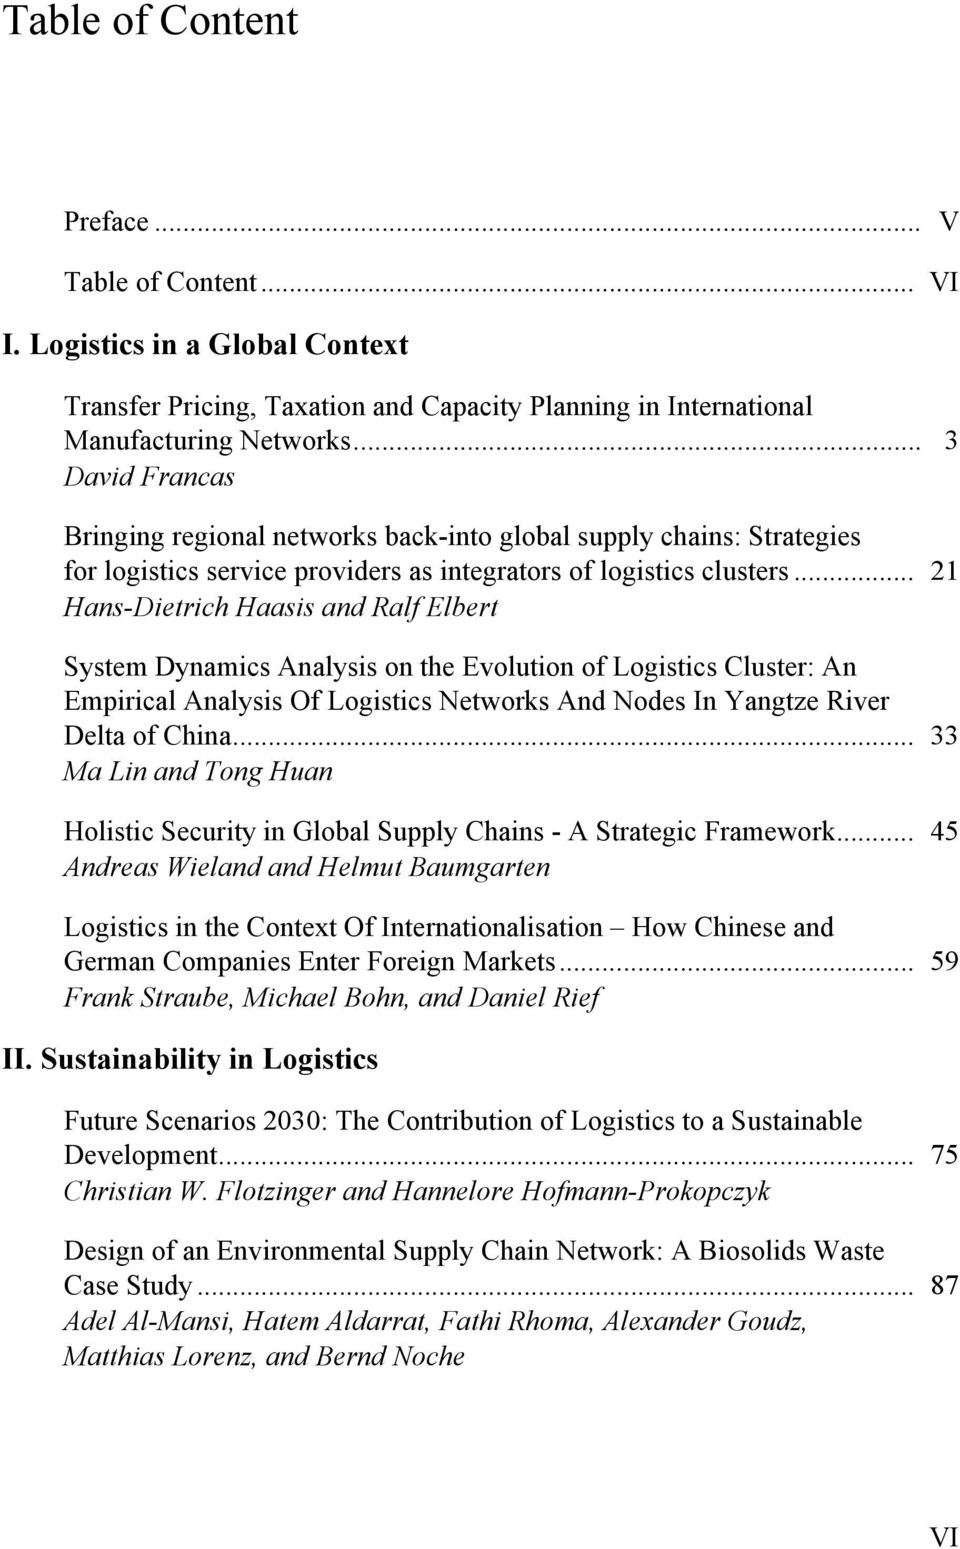 .. 21 Hans-Dietrich Haasis and Ralf Elbert System Dynamics Analysis on the Evolution of Logistics Cluster: An Empirical Analysis Of Logistics Networks And Nodes In Yangtze River Delta of China.